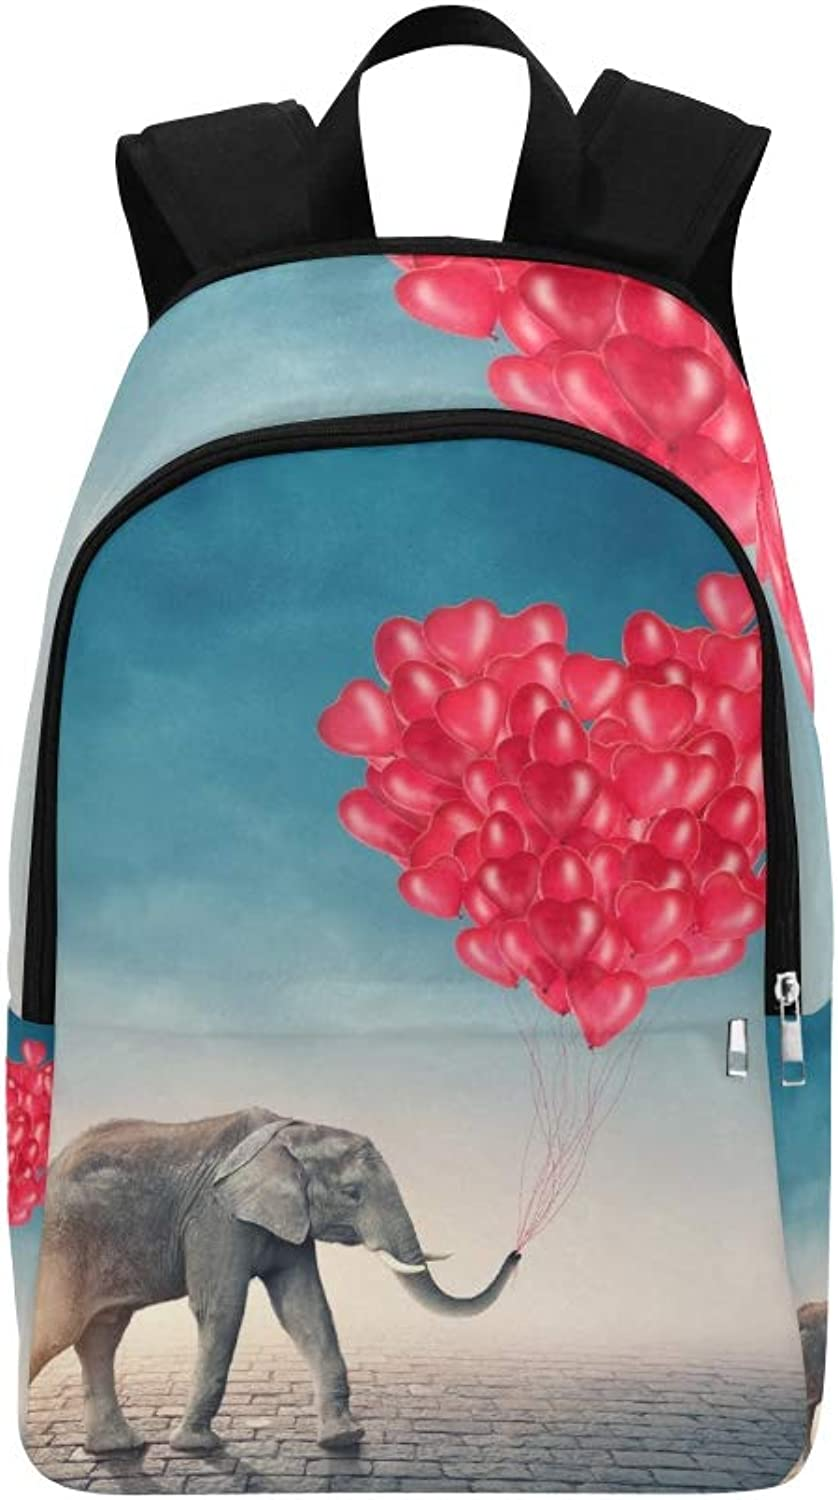 Elephant Going Red Balloons Casual Daypack Travel Bag College School Backpack for Mens and Women